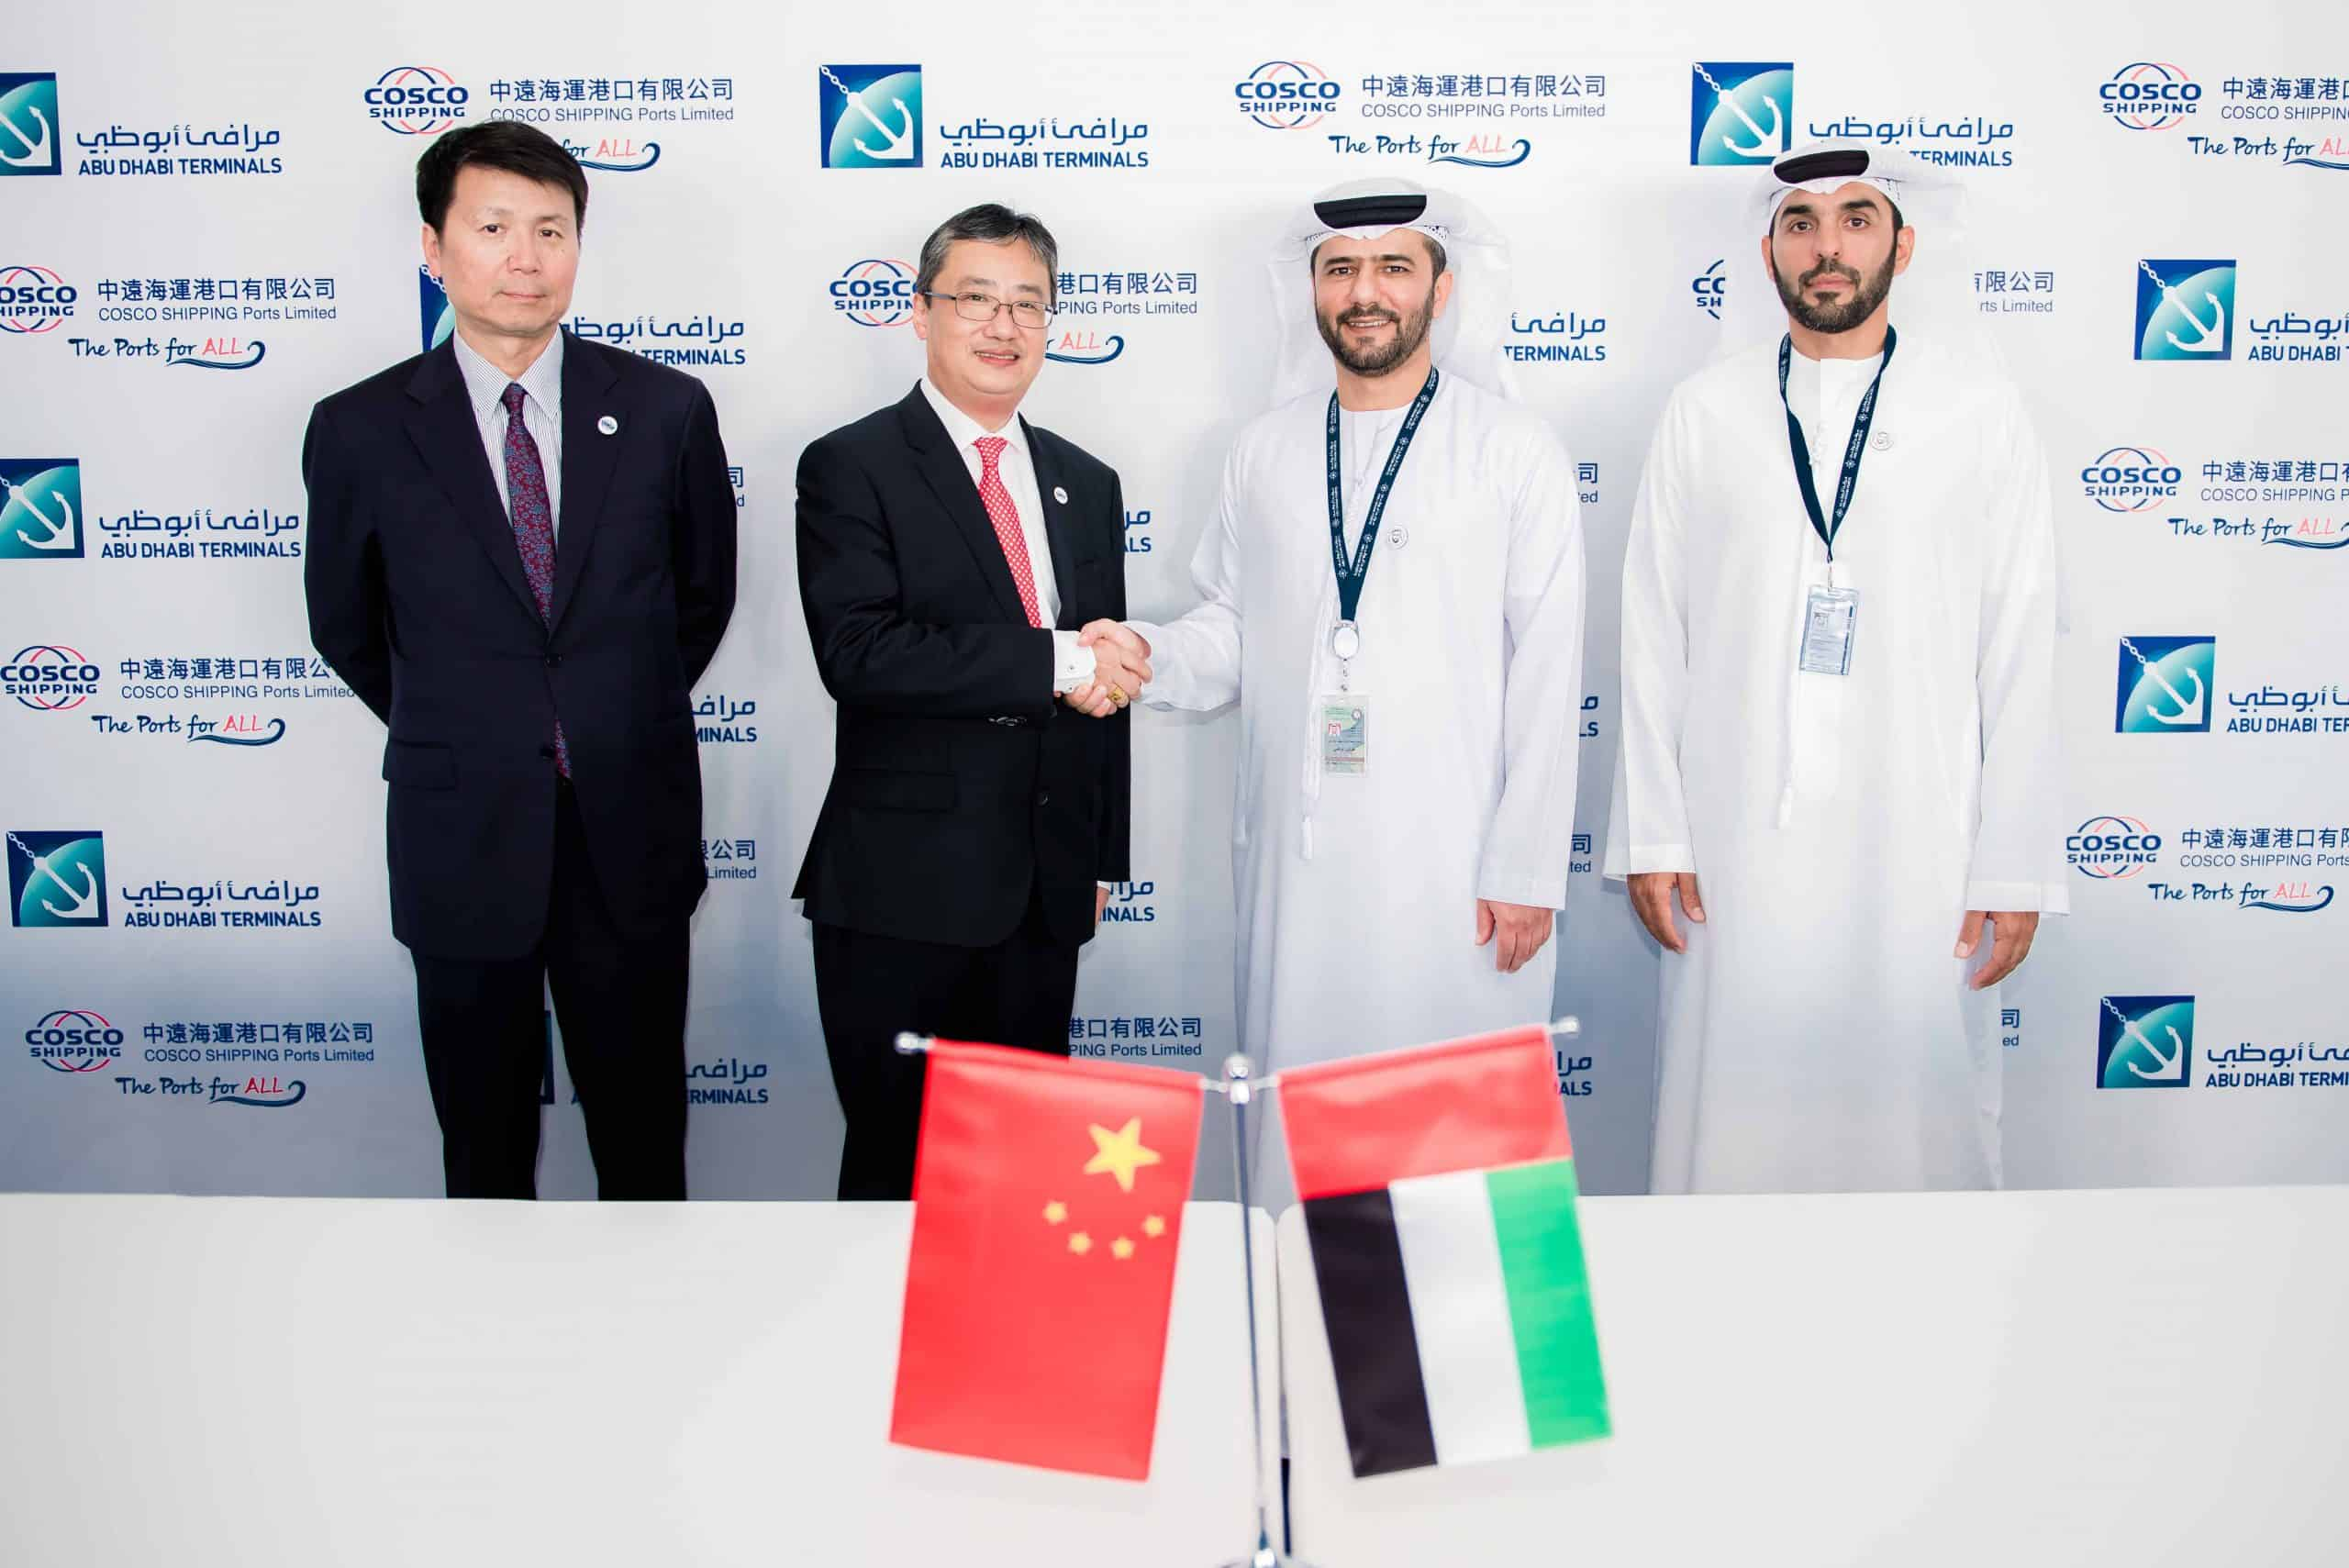 Abu Dhabi Terminals and COSCO agree to increase collaboration